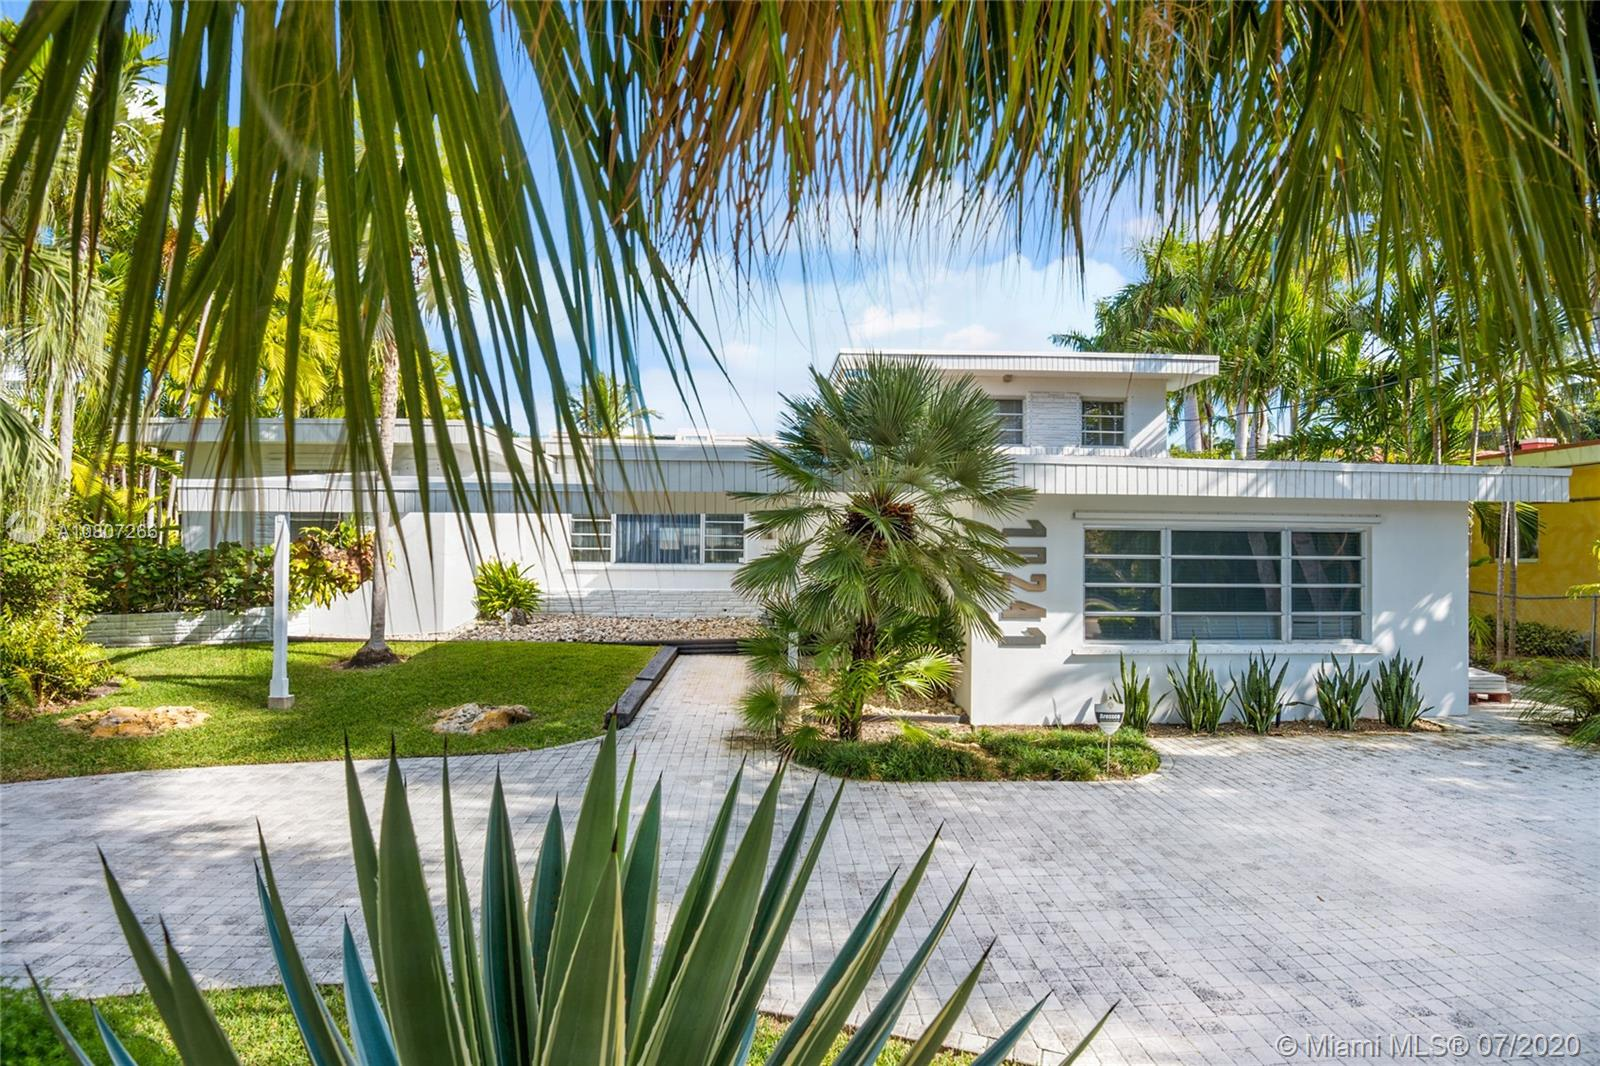 10241 E Broadview Dr Property Photo - Bay Harbor Islands, FL real estate listing